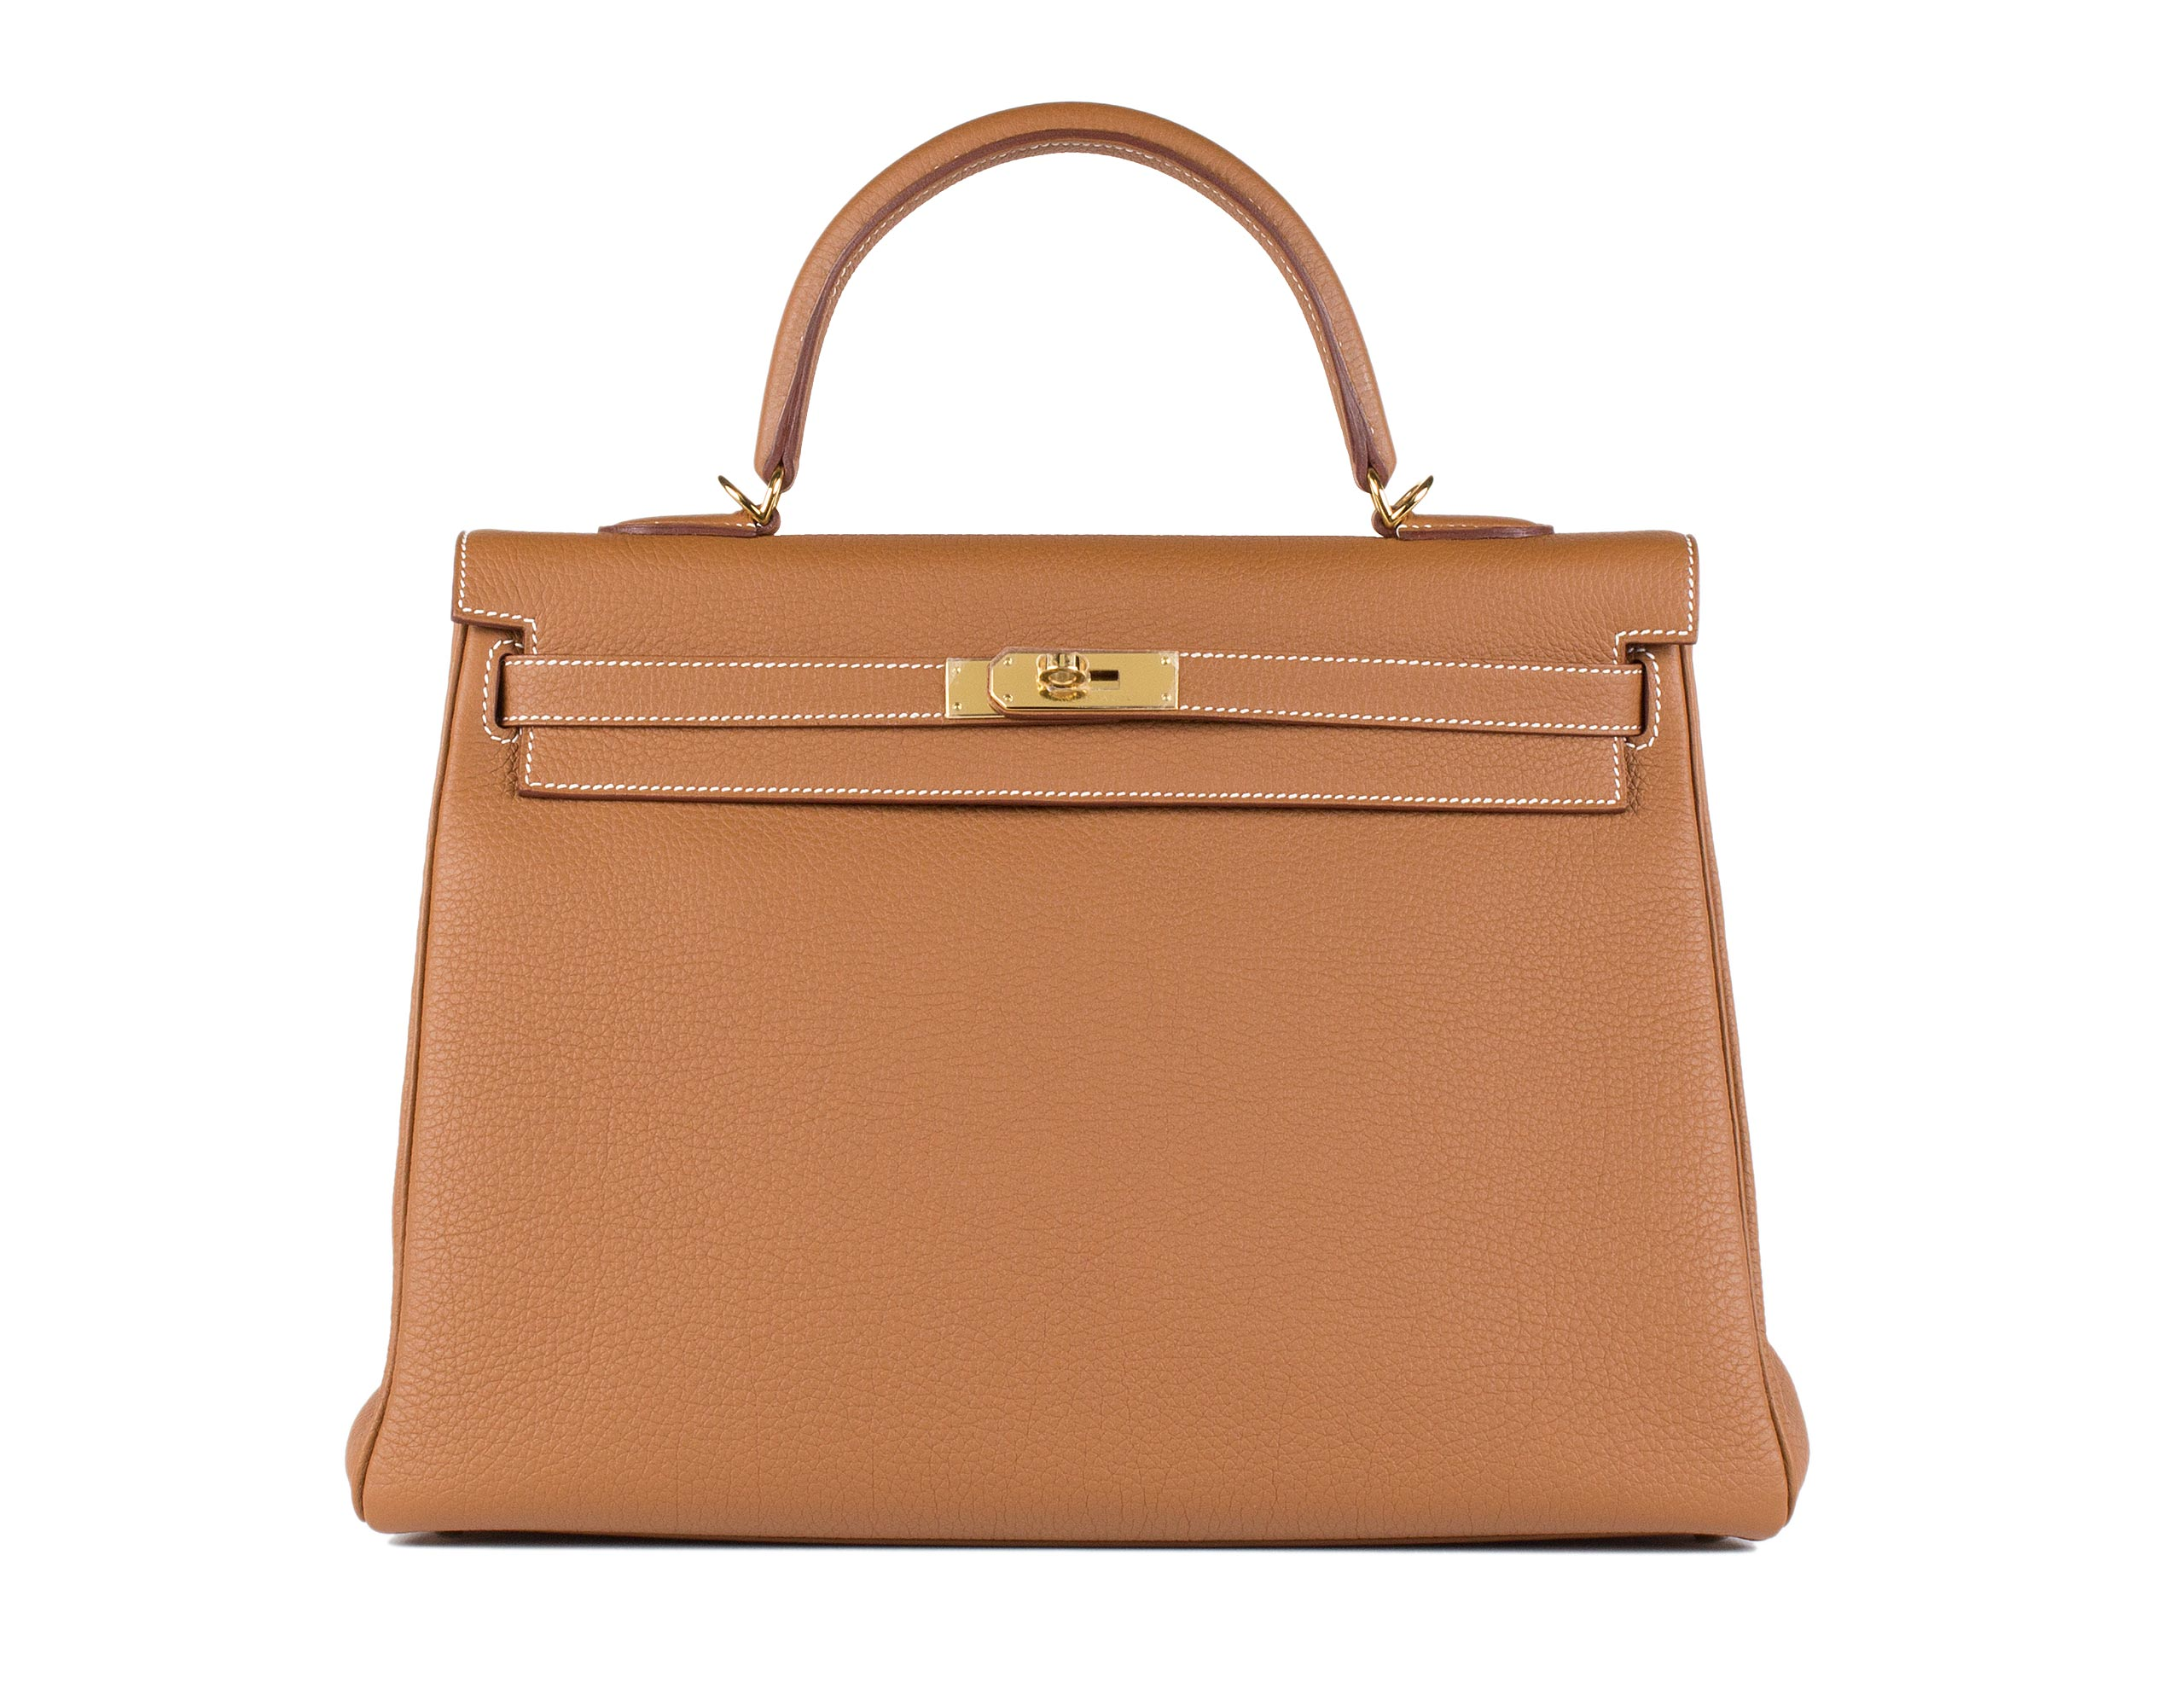 Hermes Bag Kelly Gold Togo 35cm K74 Front